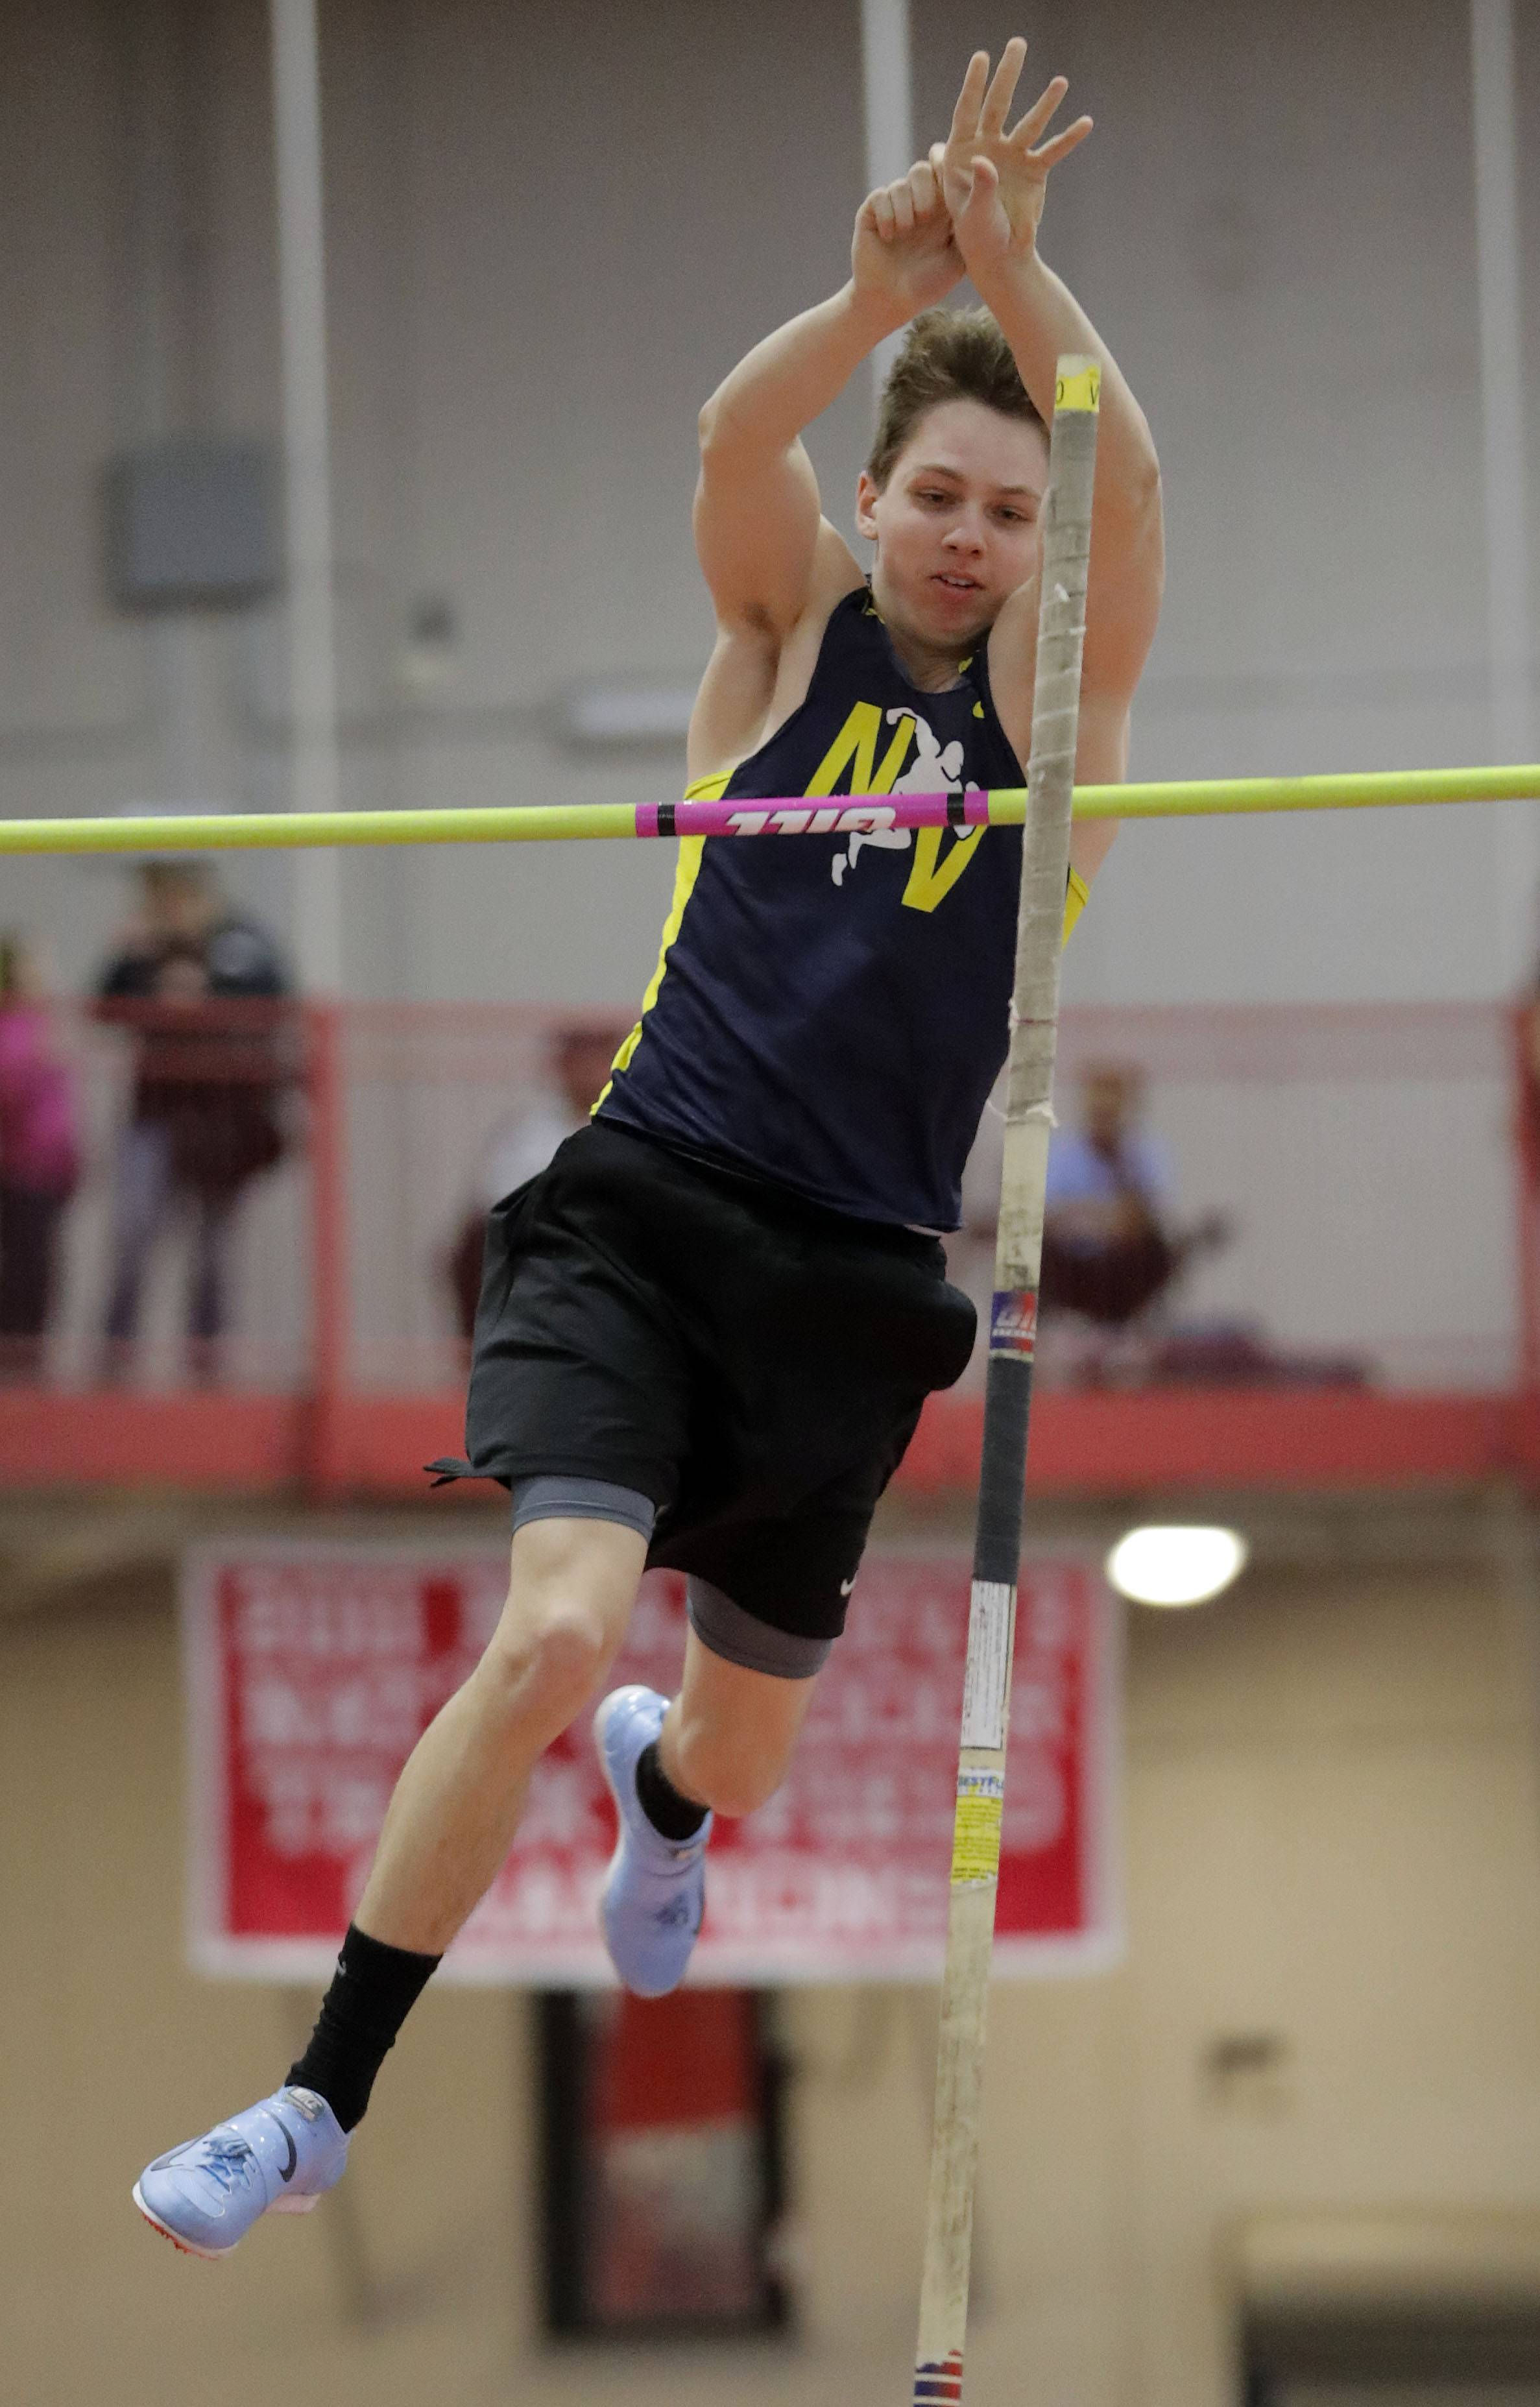 Neuqua Valley's Trevor Lambert competes in the pole vault during the DuPage Valley Conference boys track meet at North Central College in Naperville Friday.